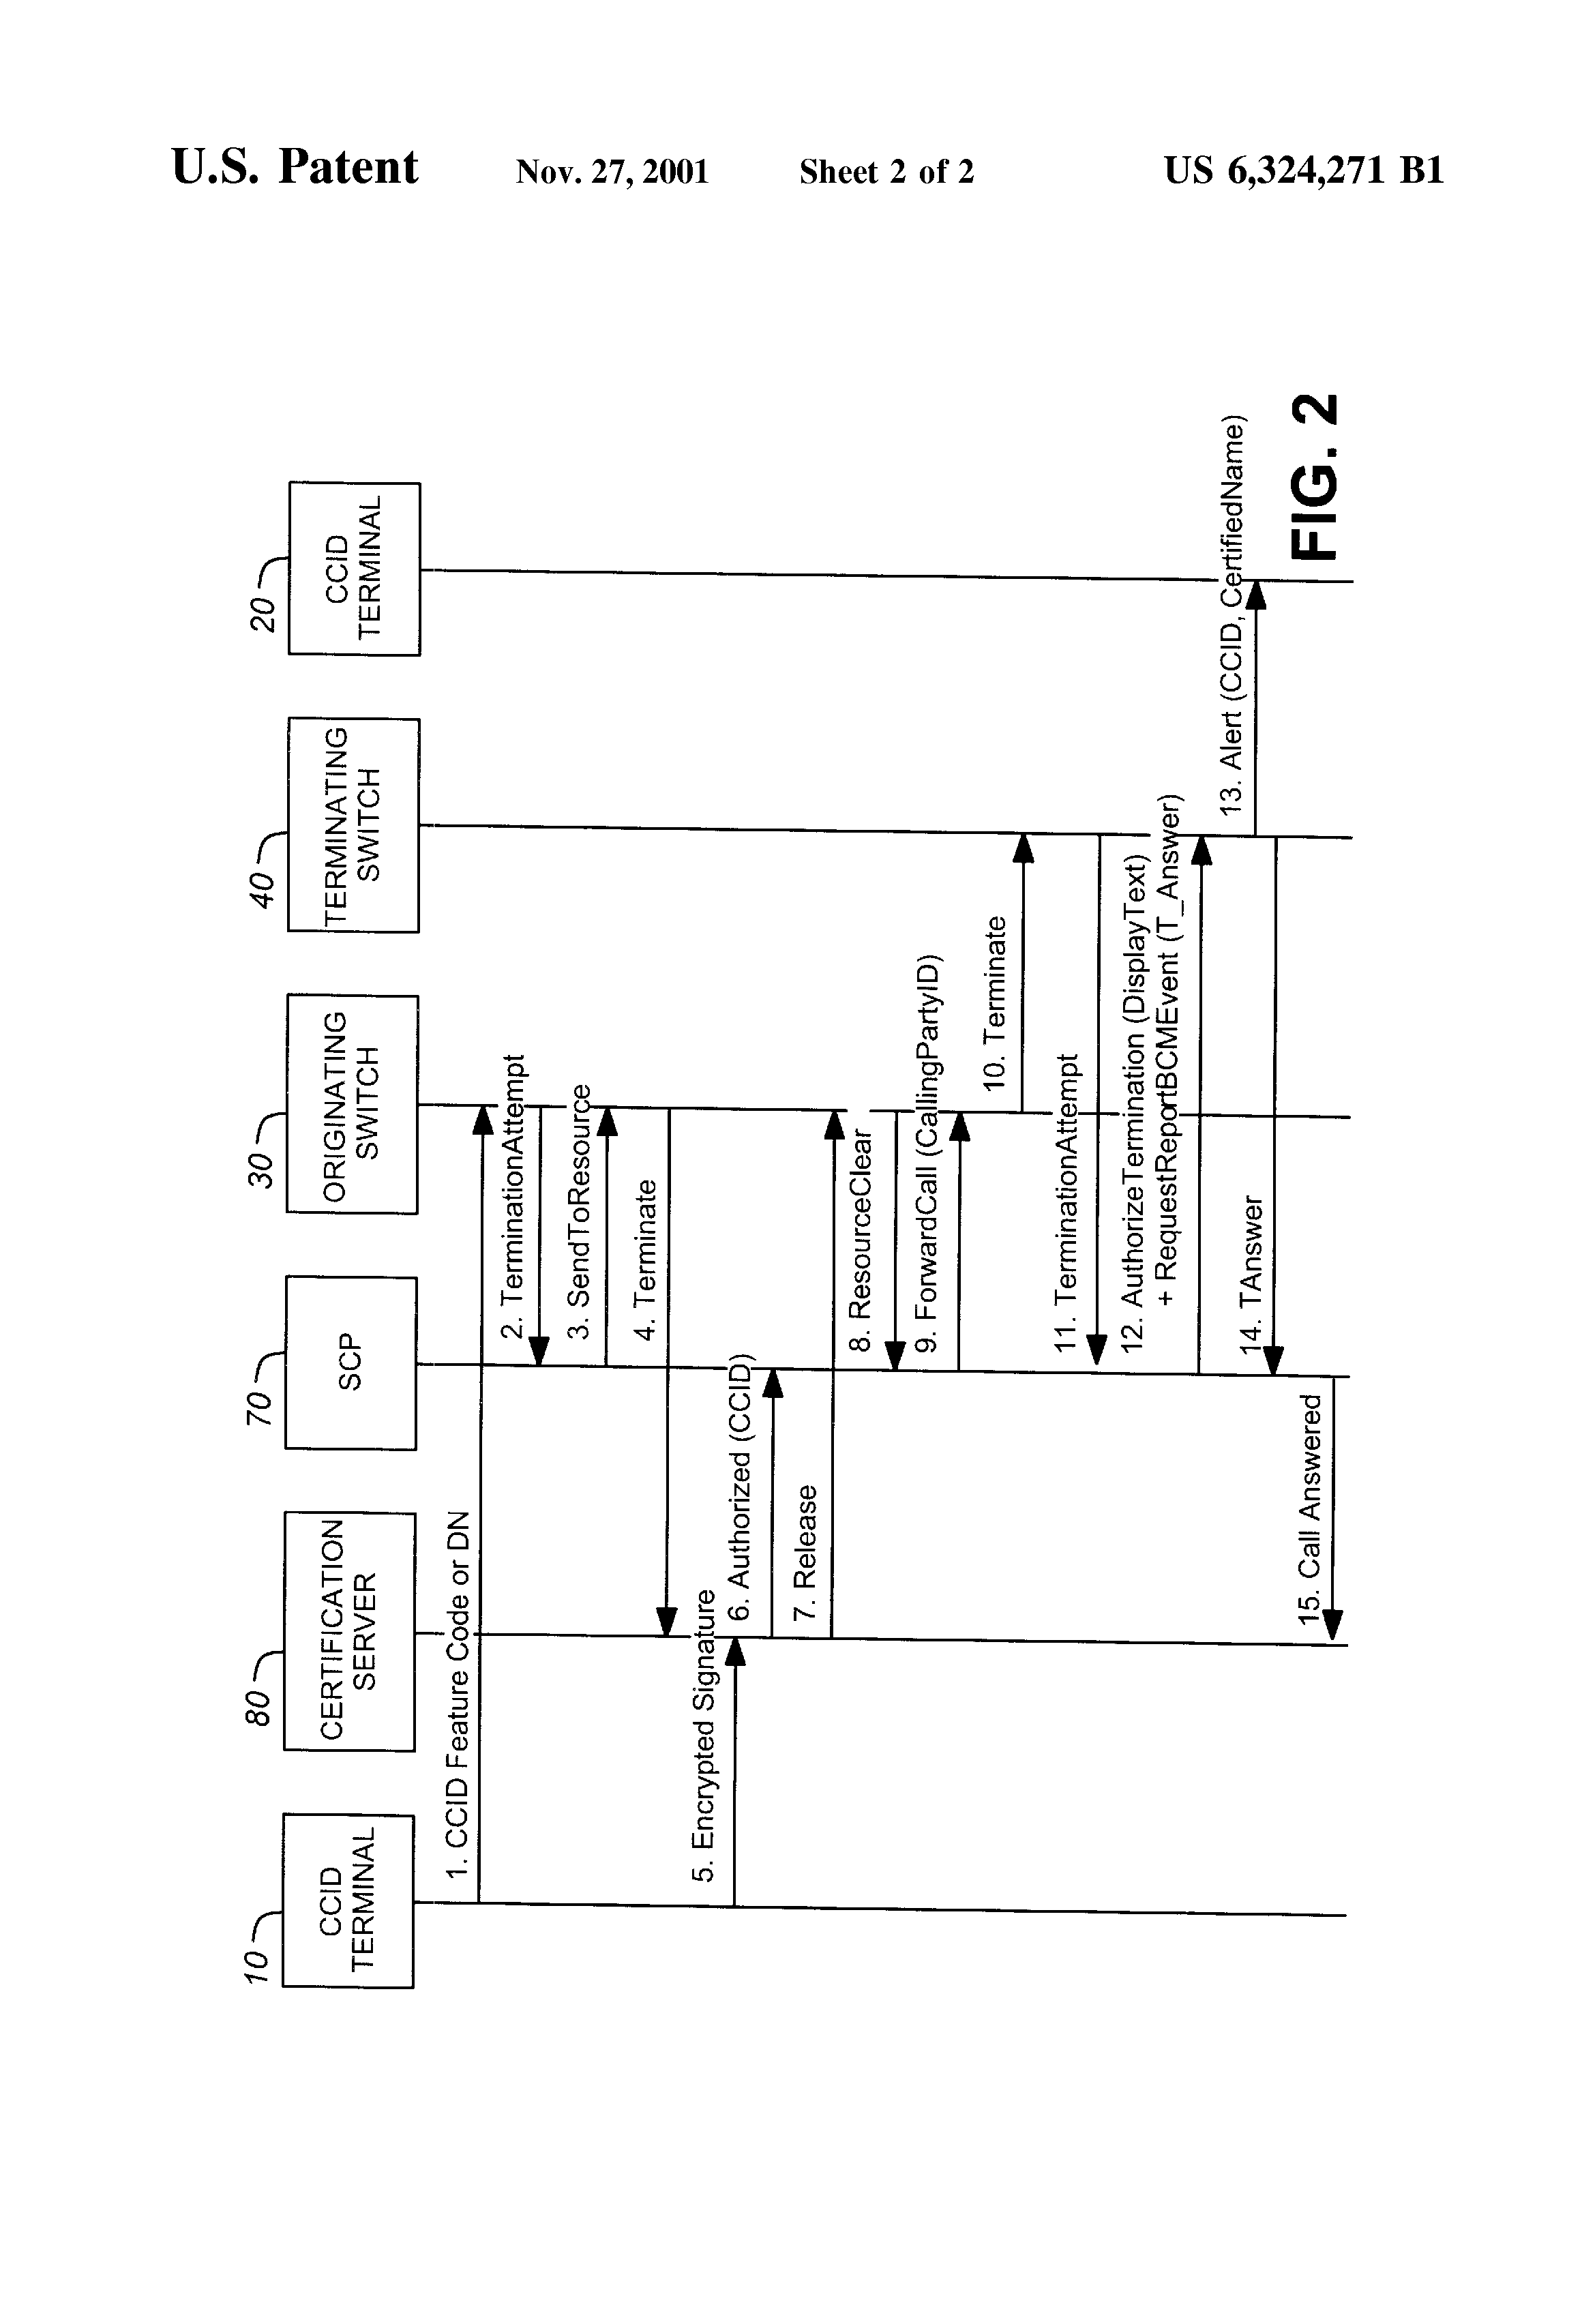 US 6324271 B1 - System And Method For Authentication Of Caller